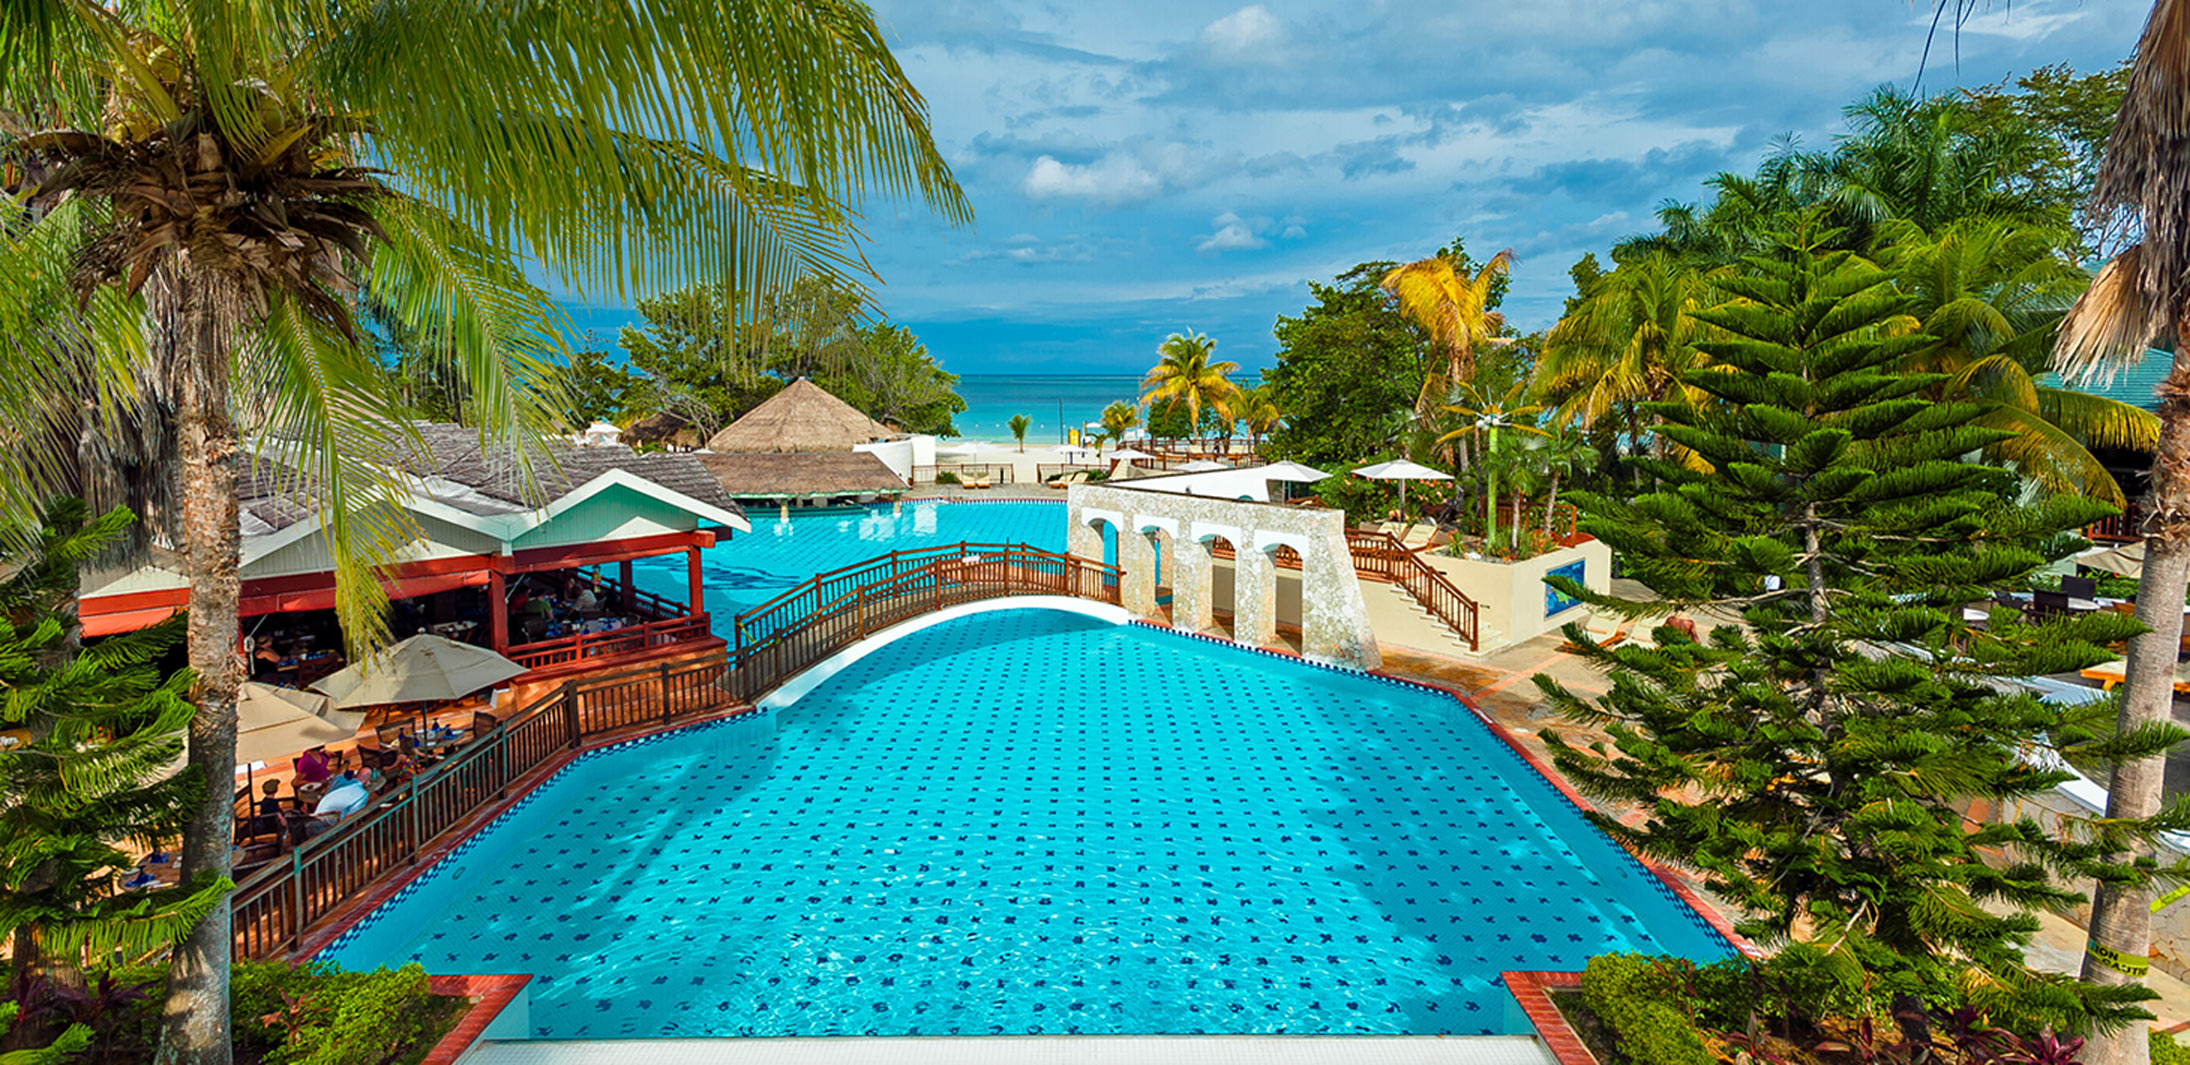 b3b4e5b32401 Beaches Resorts - Family Friendly Caribbean All-Inclusives   Vacations